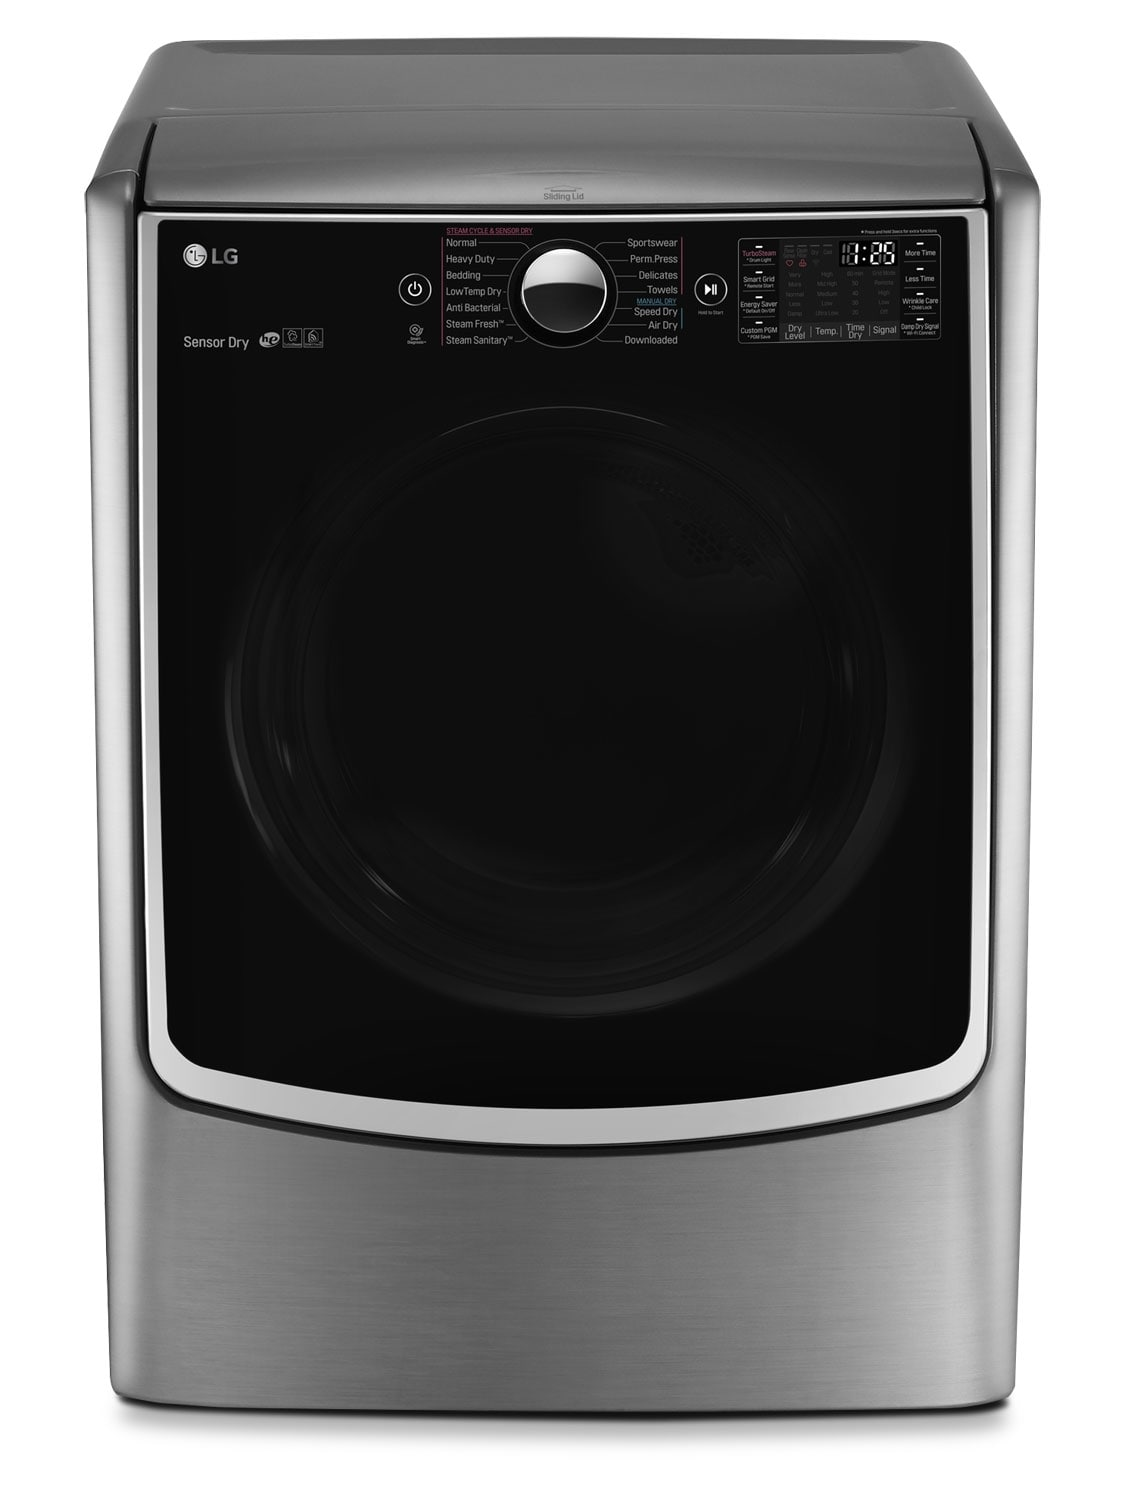 Washers and Dryers - LG 7.4 Cu. Ft. Electric Dryer with TurboSteam™ and LoDecibel™ – Graphite Steel